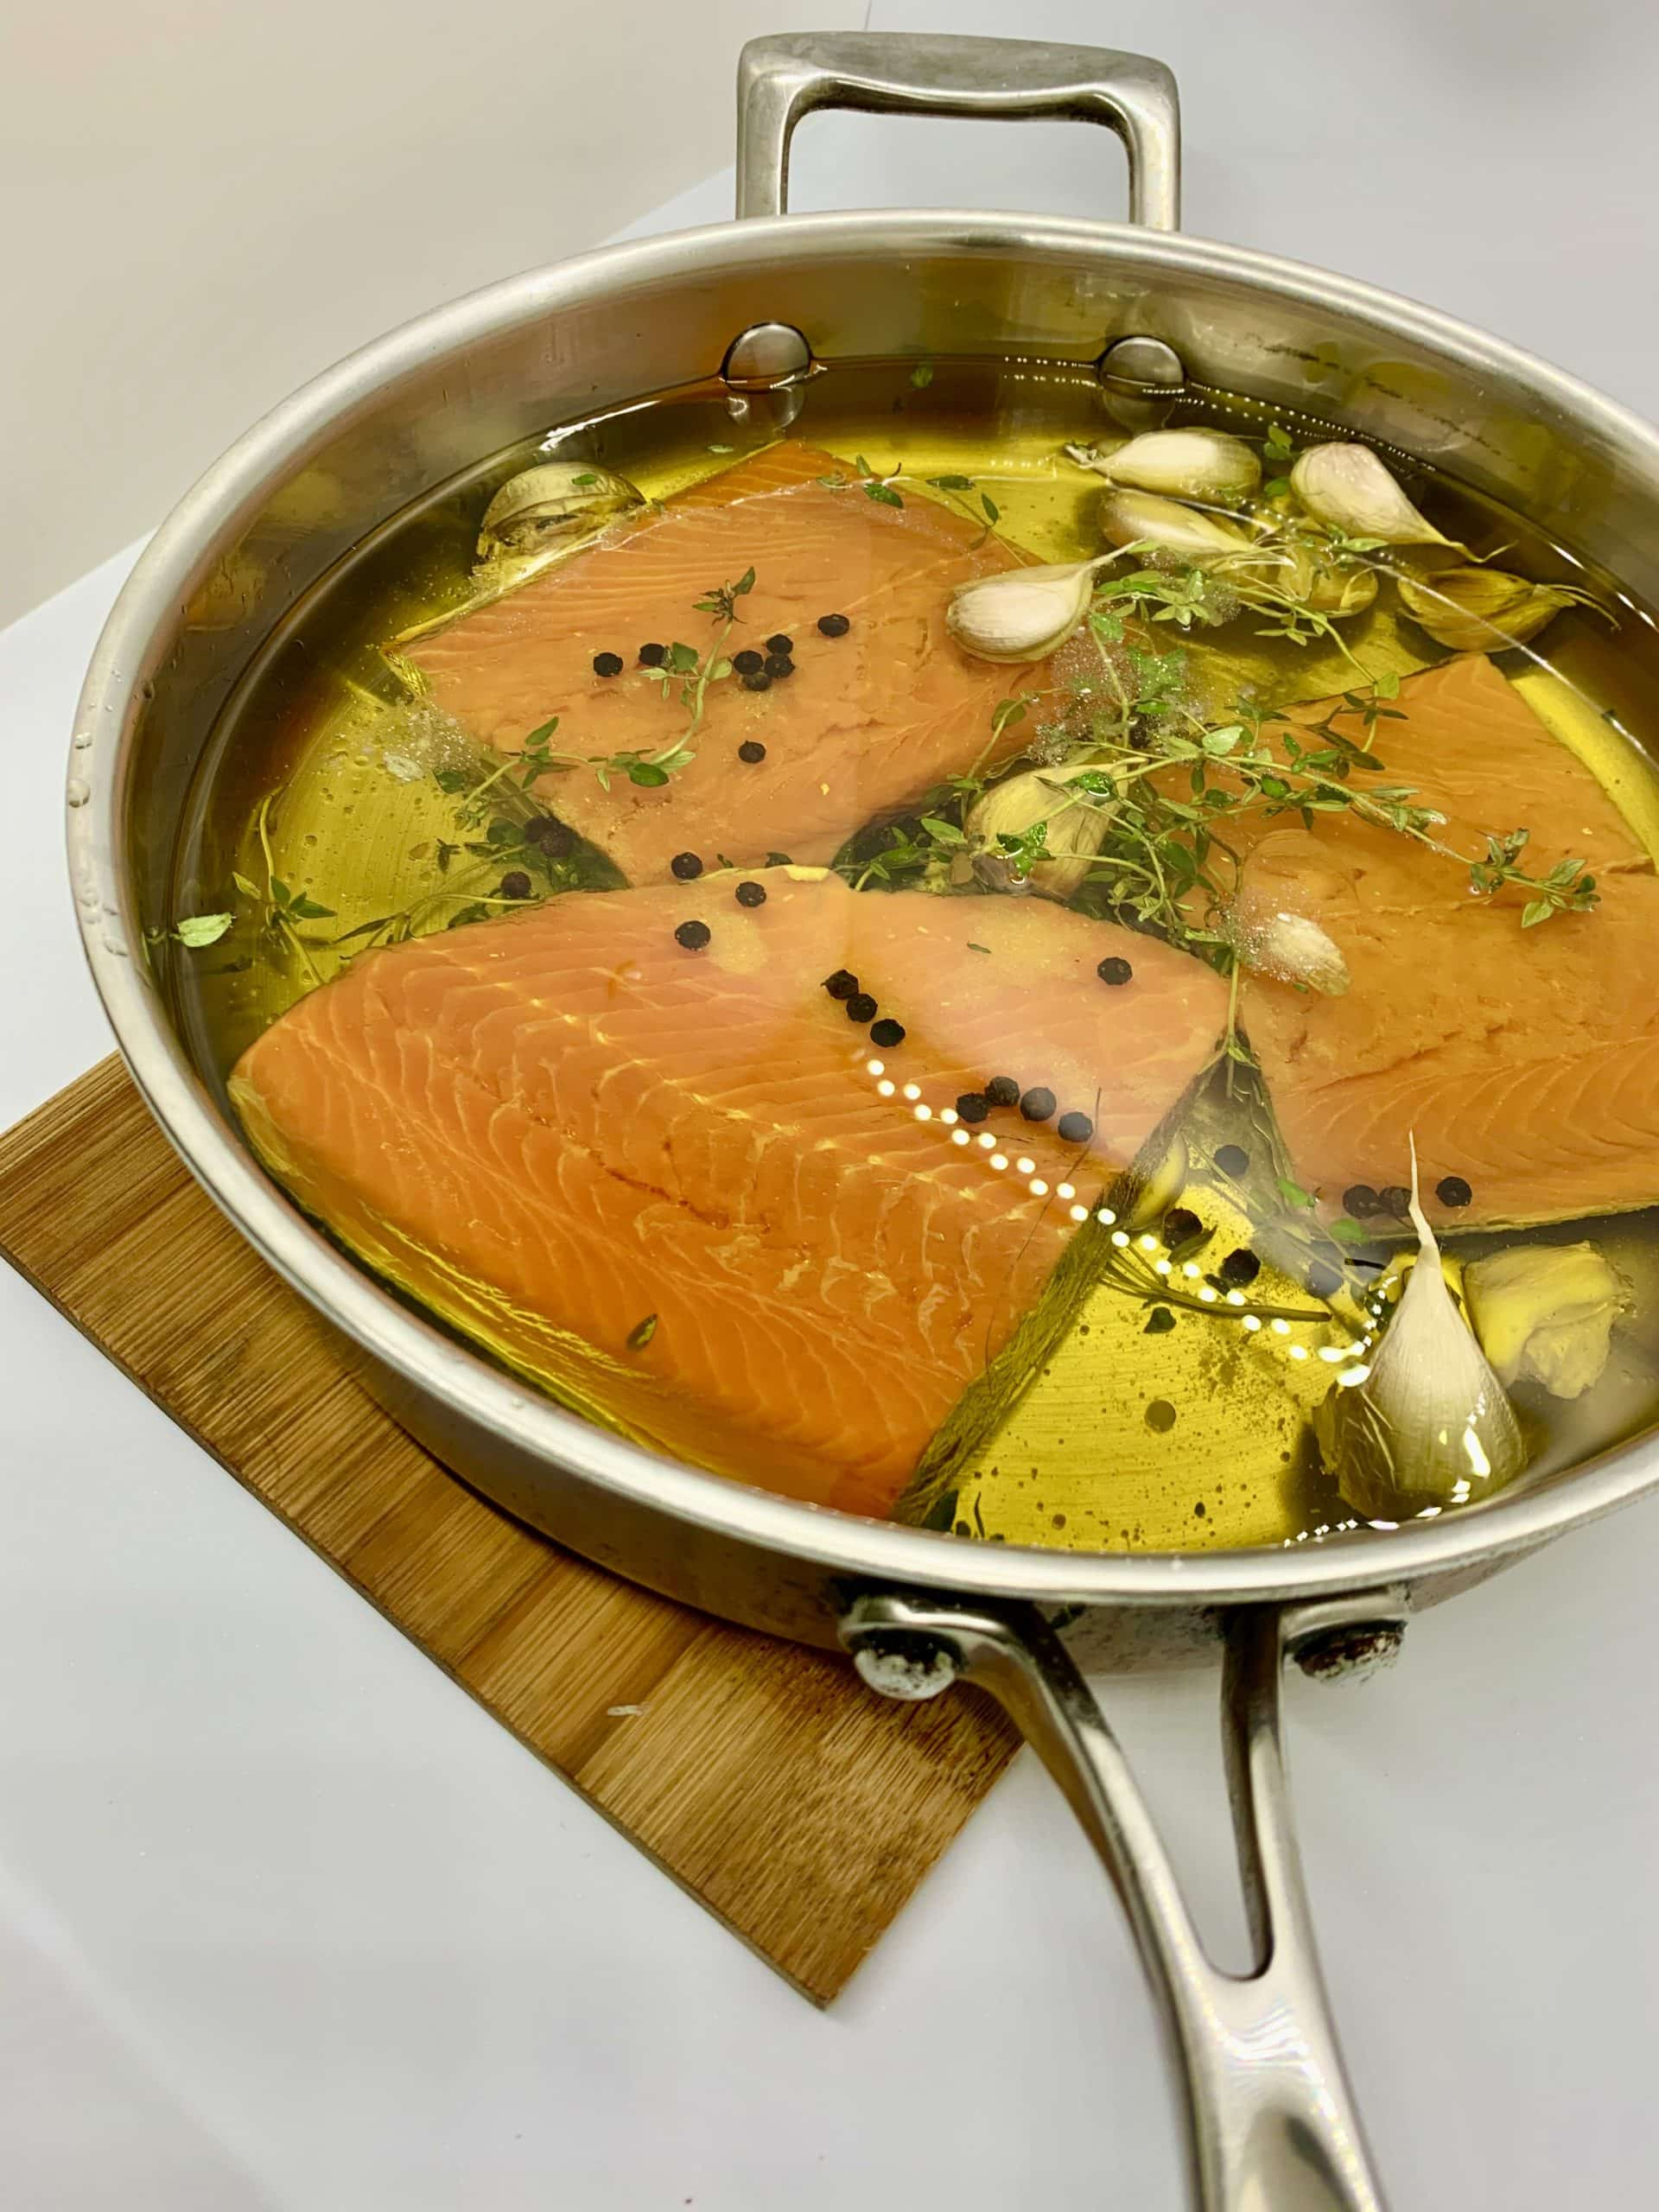 ChillaxBBQ Stay@Home Recipes #36 - Olive Oil Poached Wild Sockeye Salmon 'w' Citrus Butter Spinach